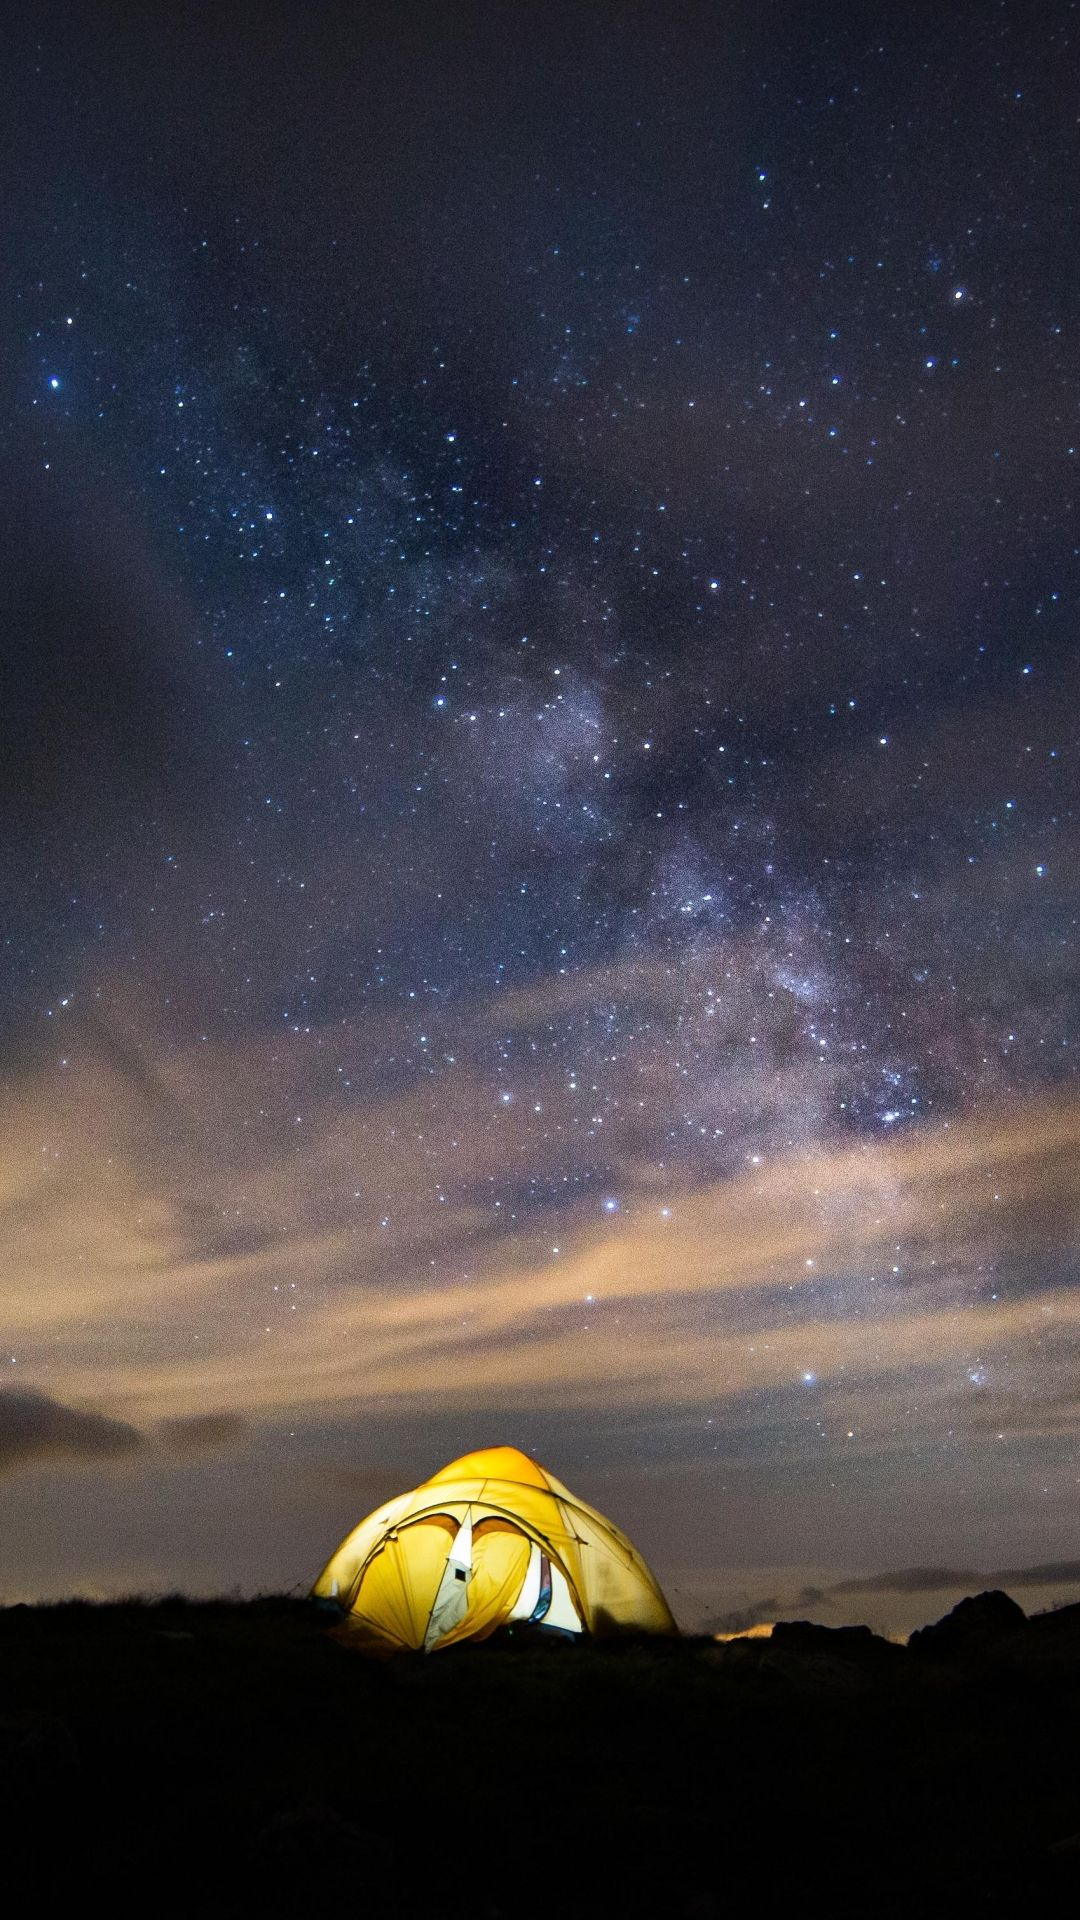 Photography Camping Night Sky Stars 1080x1920 Mobile Wallpaper Night Sky Photography Night Sky Photography Stars Camping Wallpaper